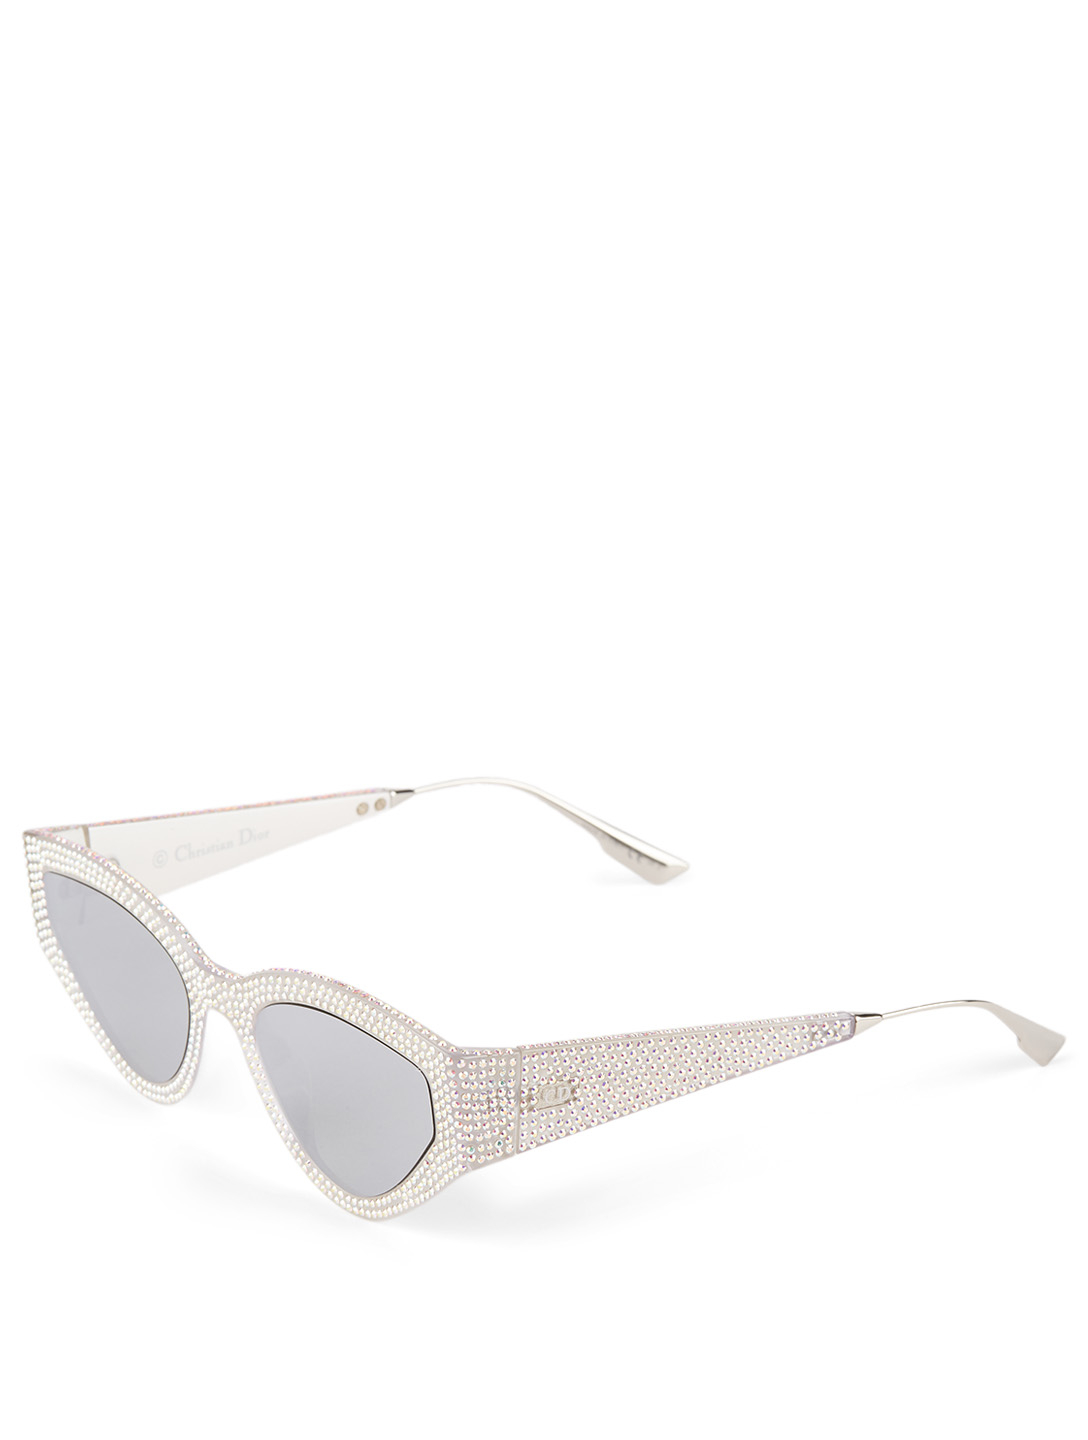 DIOR CatStyleDior1S Cat Eye Sunglasses With Crystals Women's White